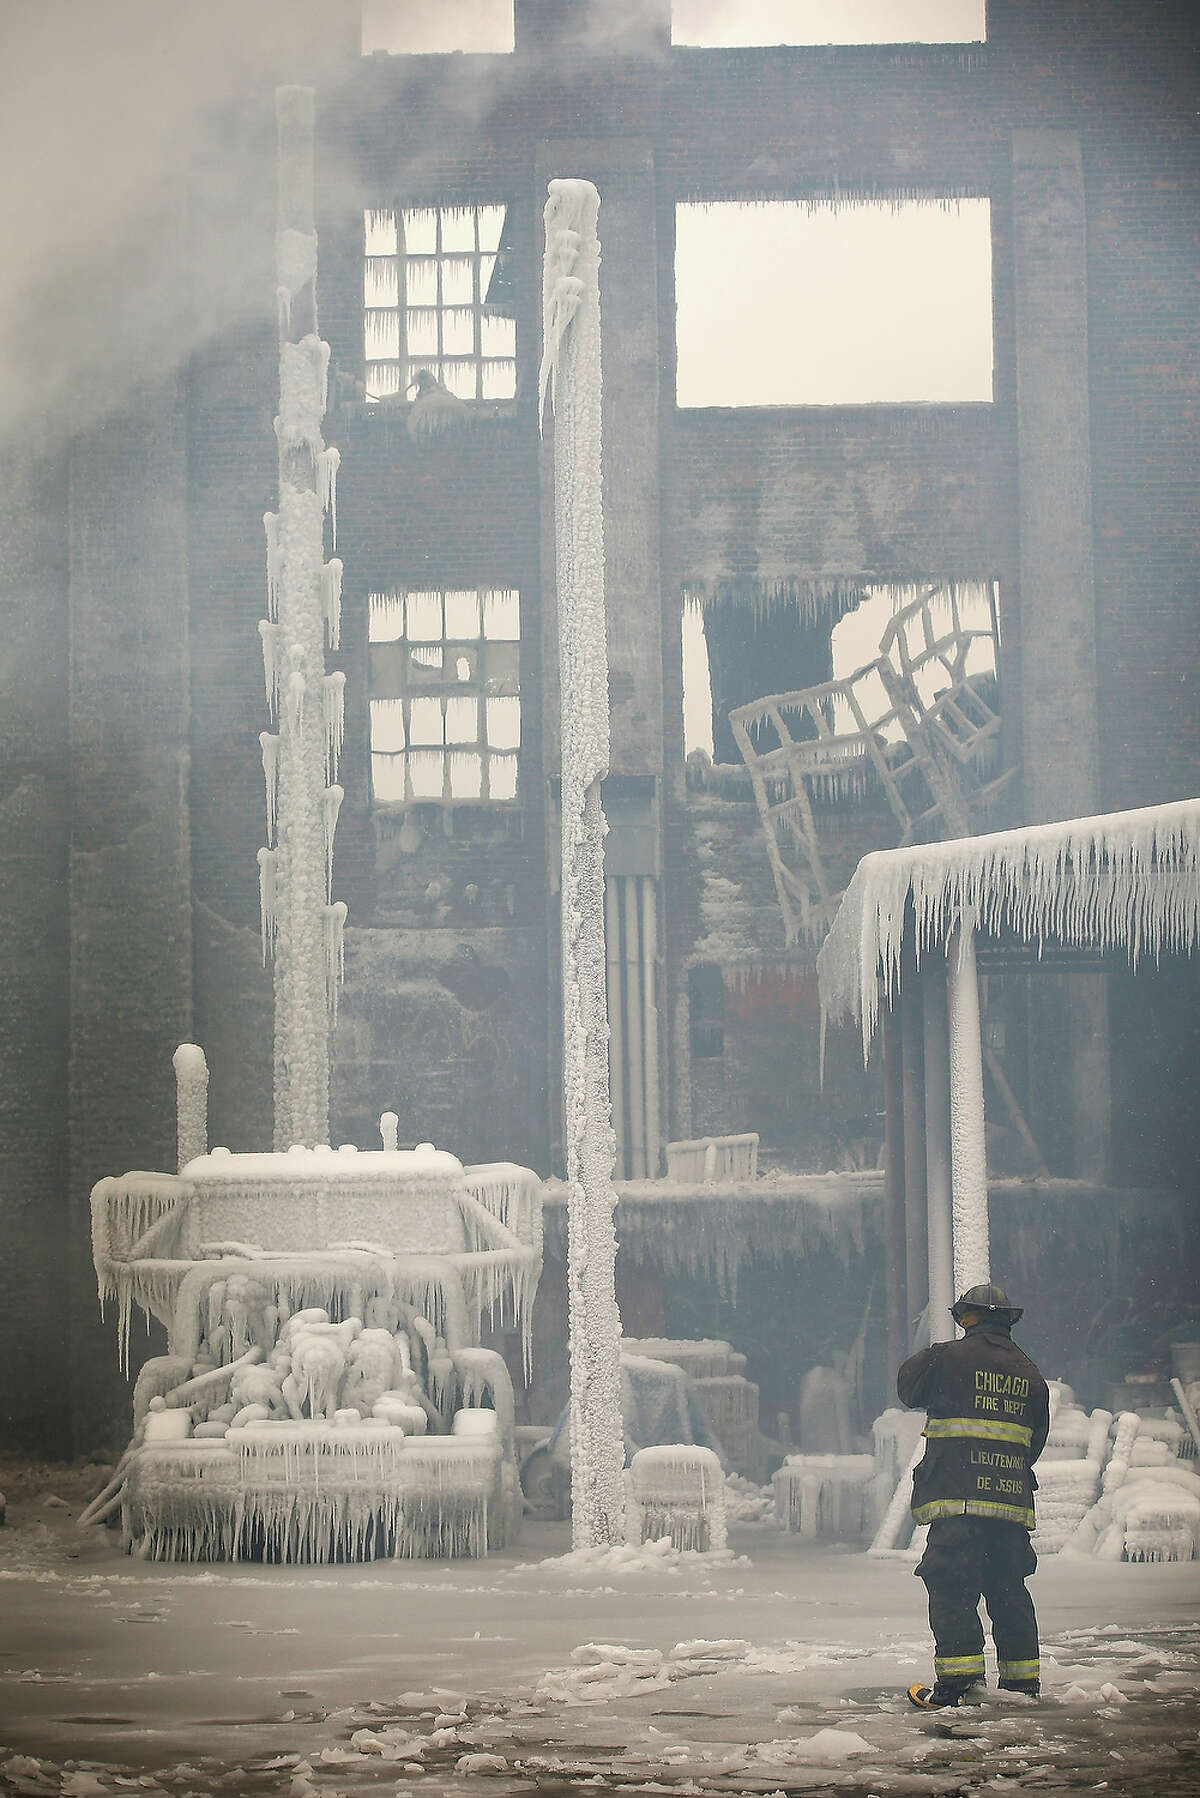 CHICAGO, IL - JANUARY 23: Firefighters help to extinguish a massive blaze at a vacant warehouse on January 23, 2013 in Chicago, Illinois. More than 200 firefighters battled a five-alarm fire as temperatures were in the single digits.